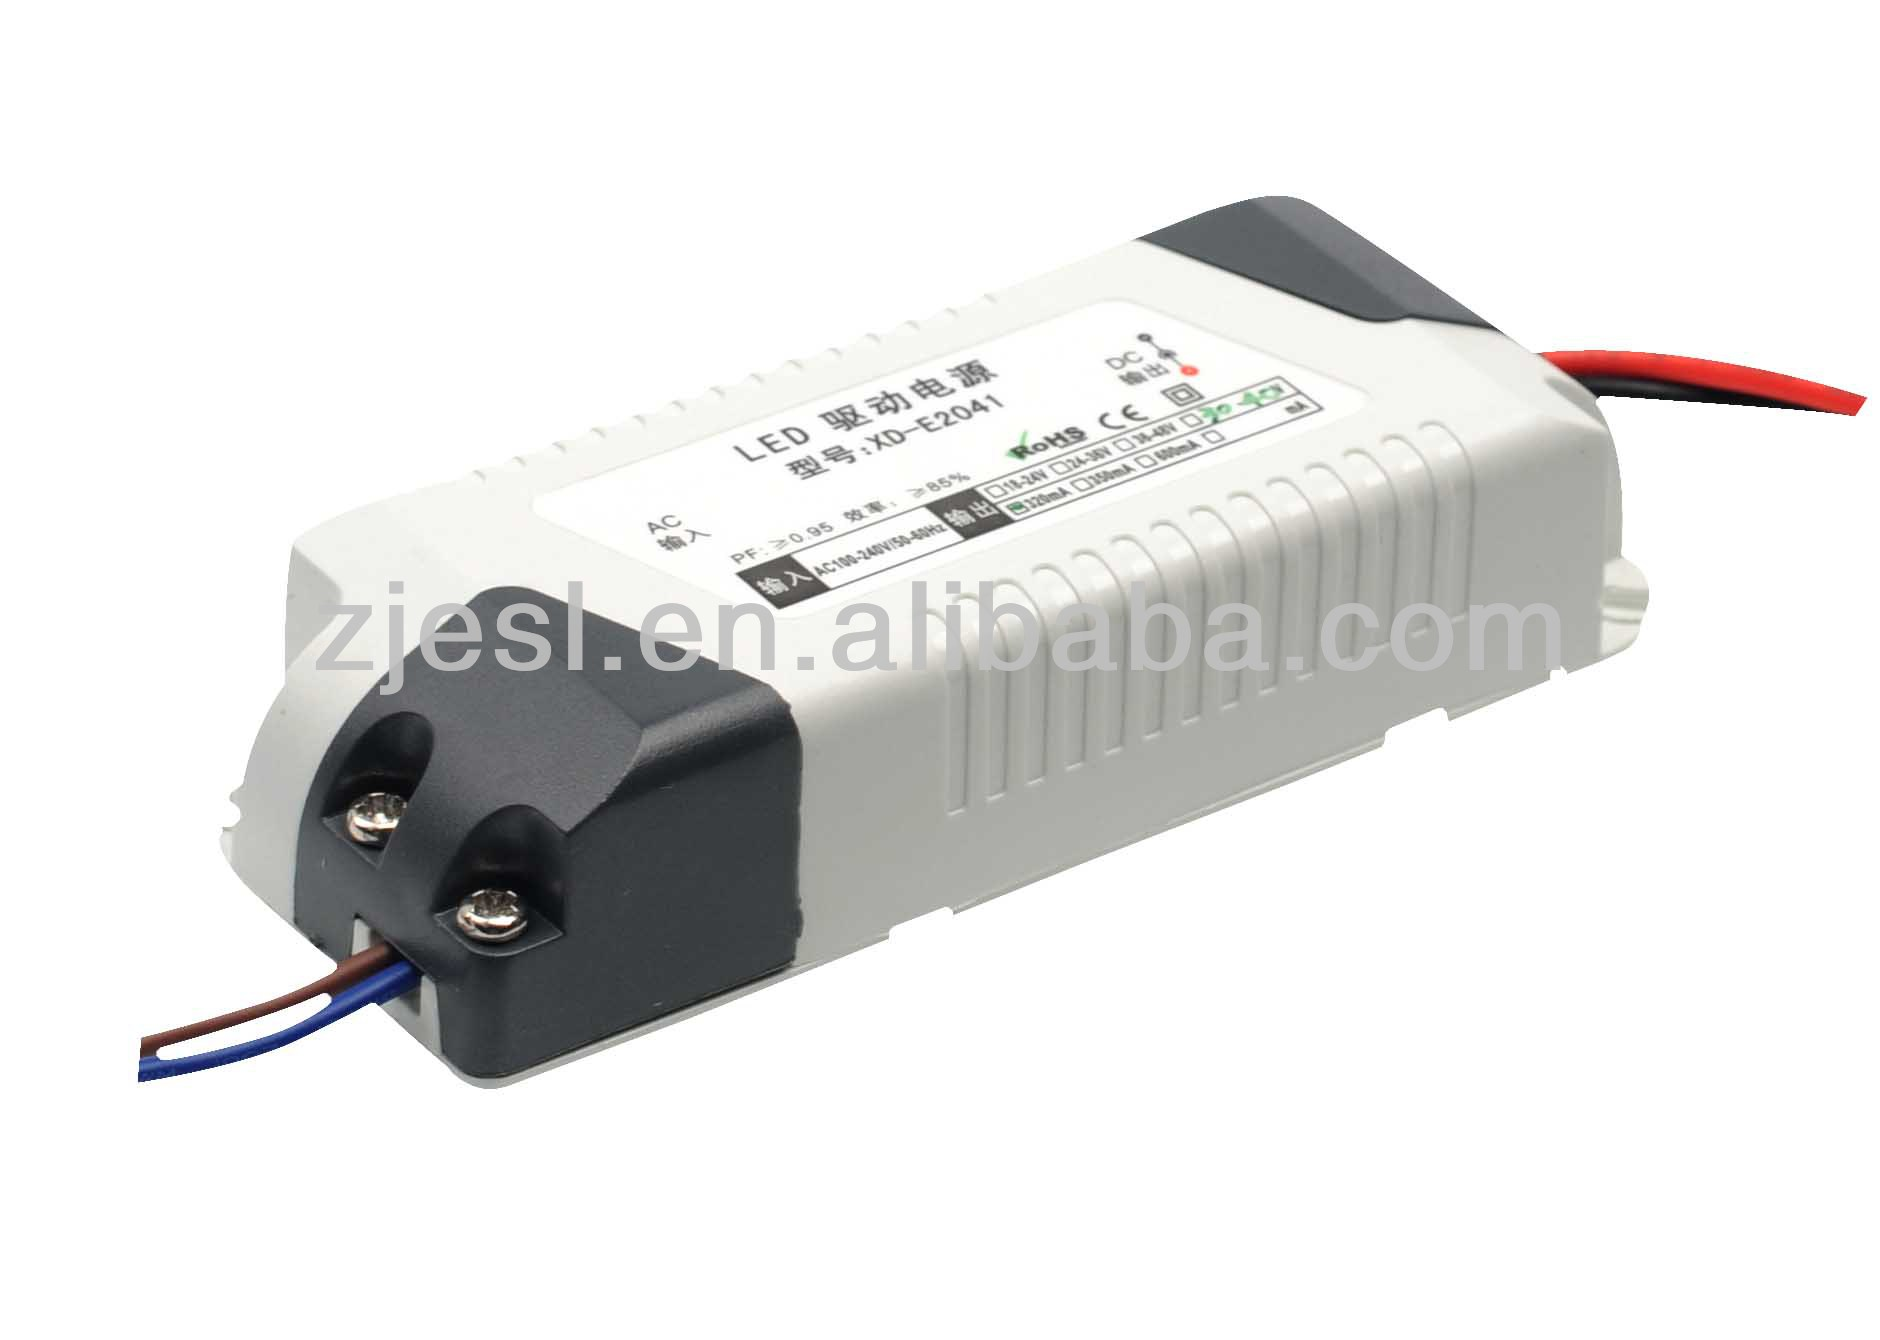 15-50w Plastic Shell Of Led Power Supply For Led Lights